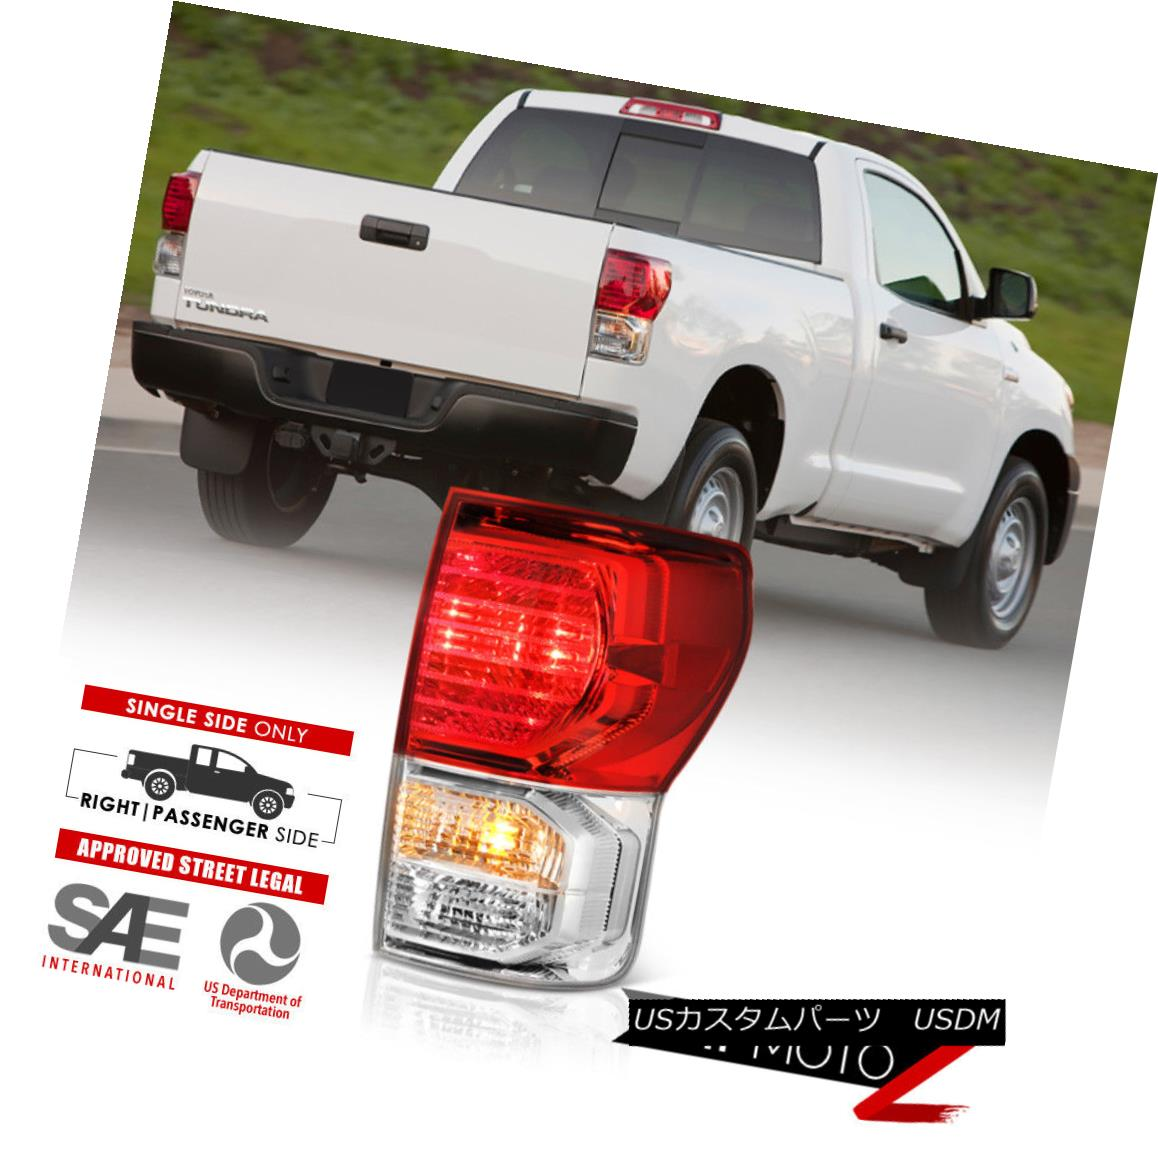 テールライト [RIGHT PASSENGER SIDE] 2010-2013 Toyota Tundra Rear Brake Tail Lights Lamps Set [Right PASSENGER SIDE] 2010-2013 Toyota Tundraリアブレーキテールライトランプセット